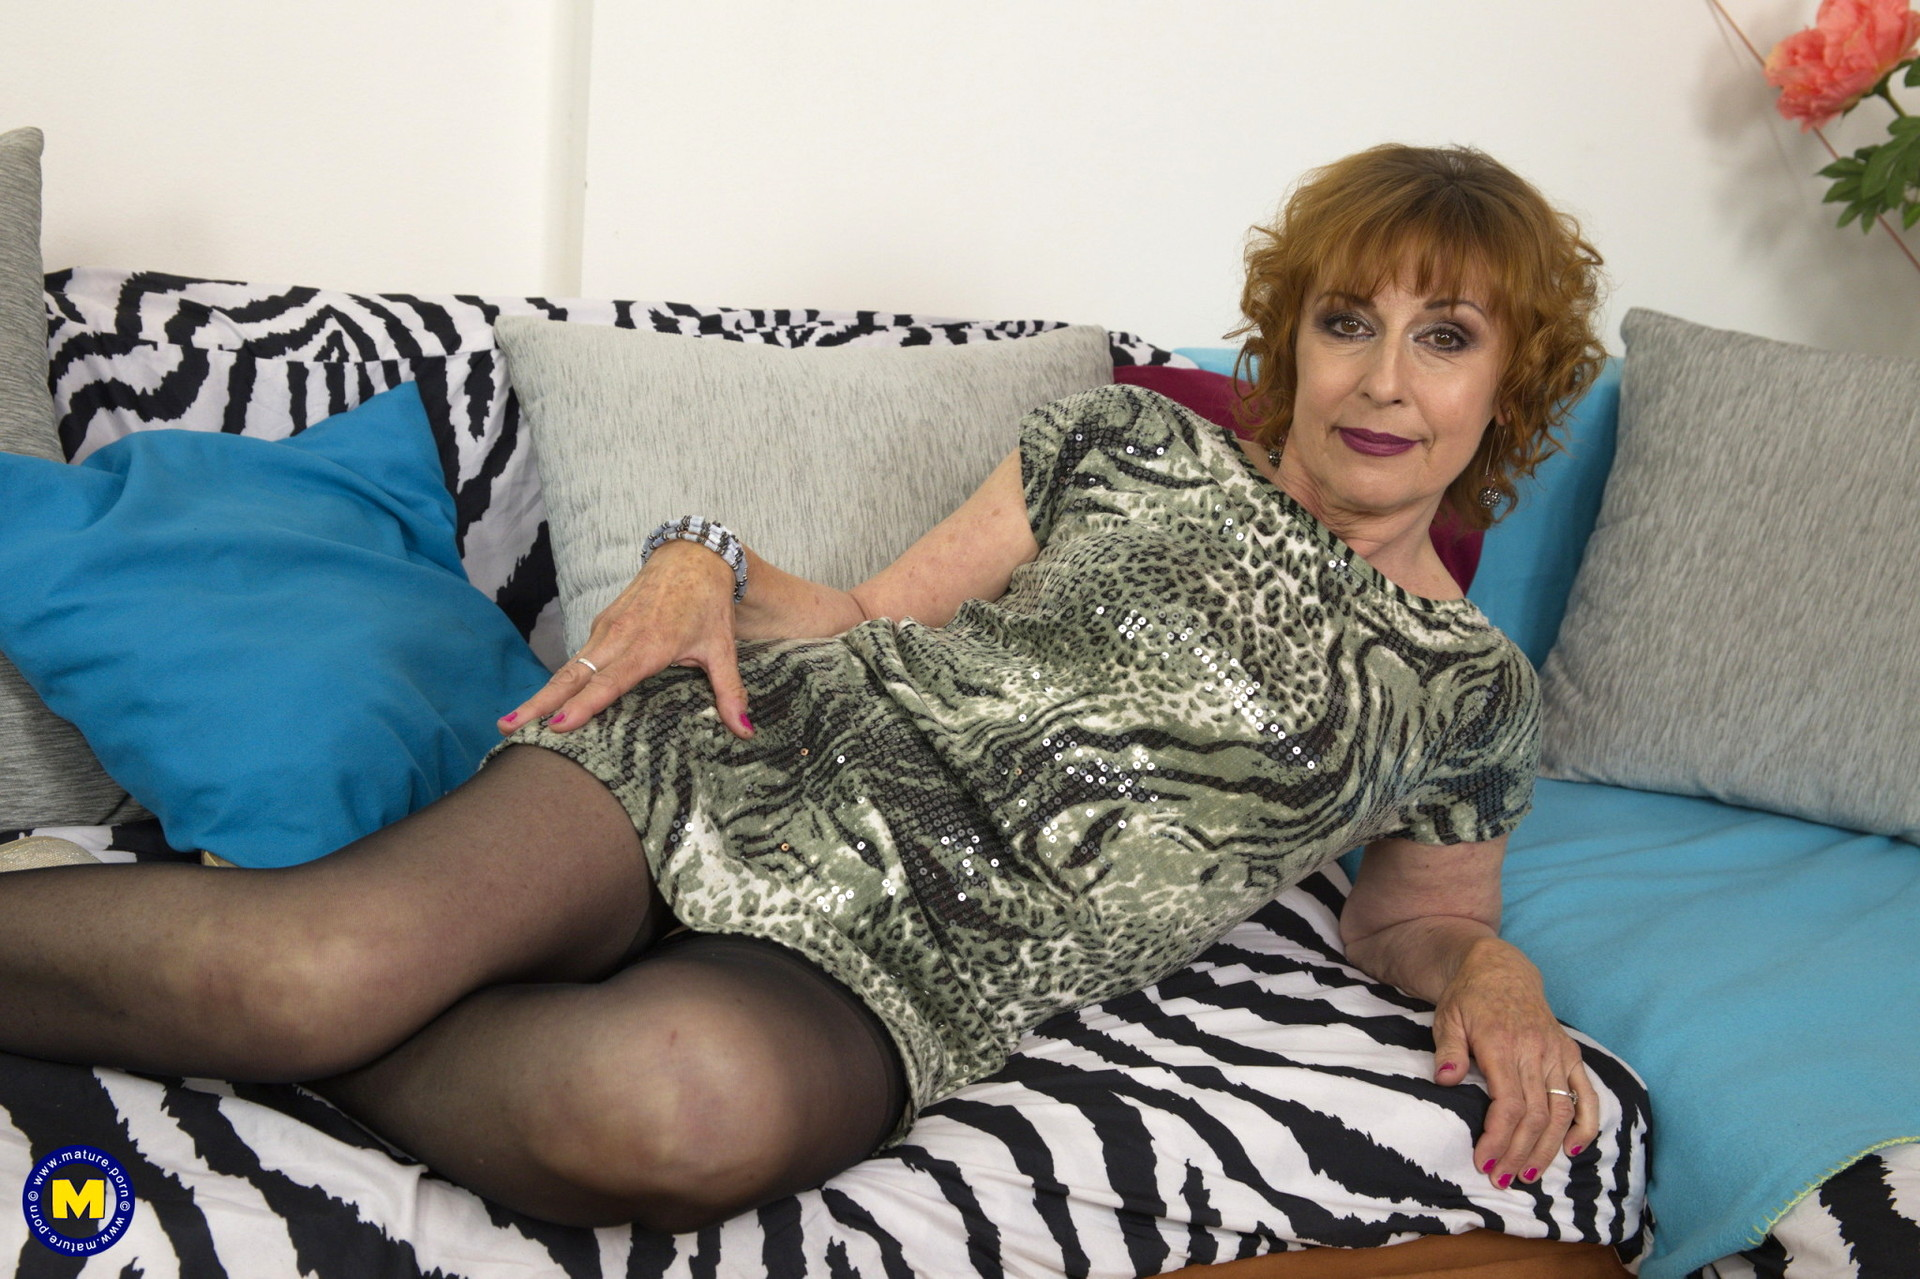 Babe Today Mature Nl Maturenl Model Modern Mom And Son -9621